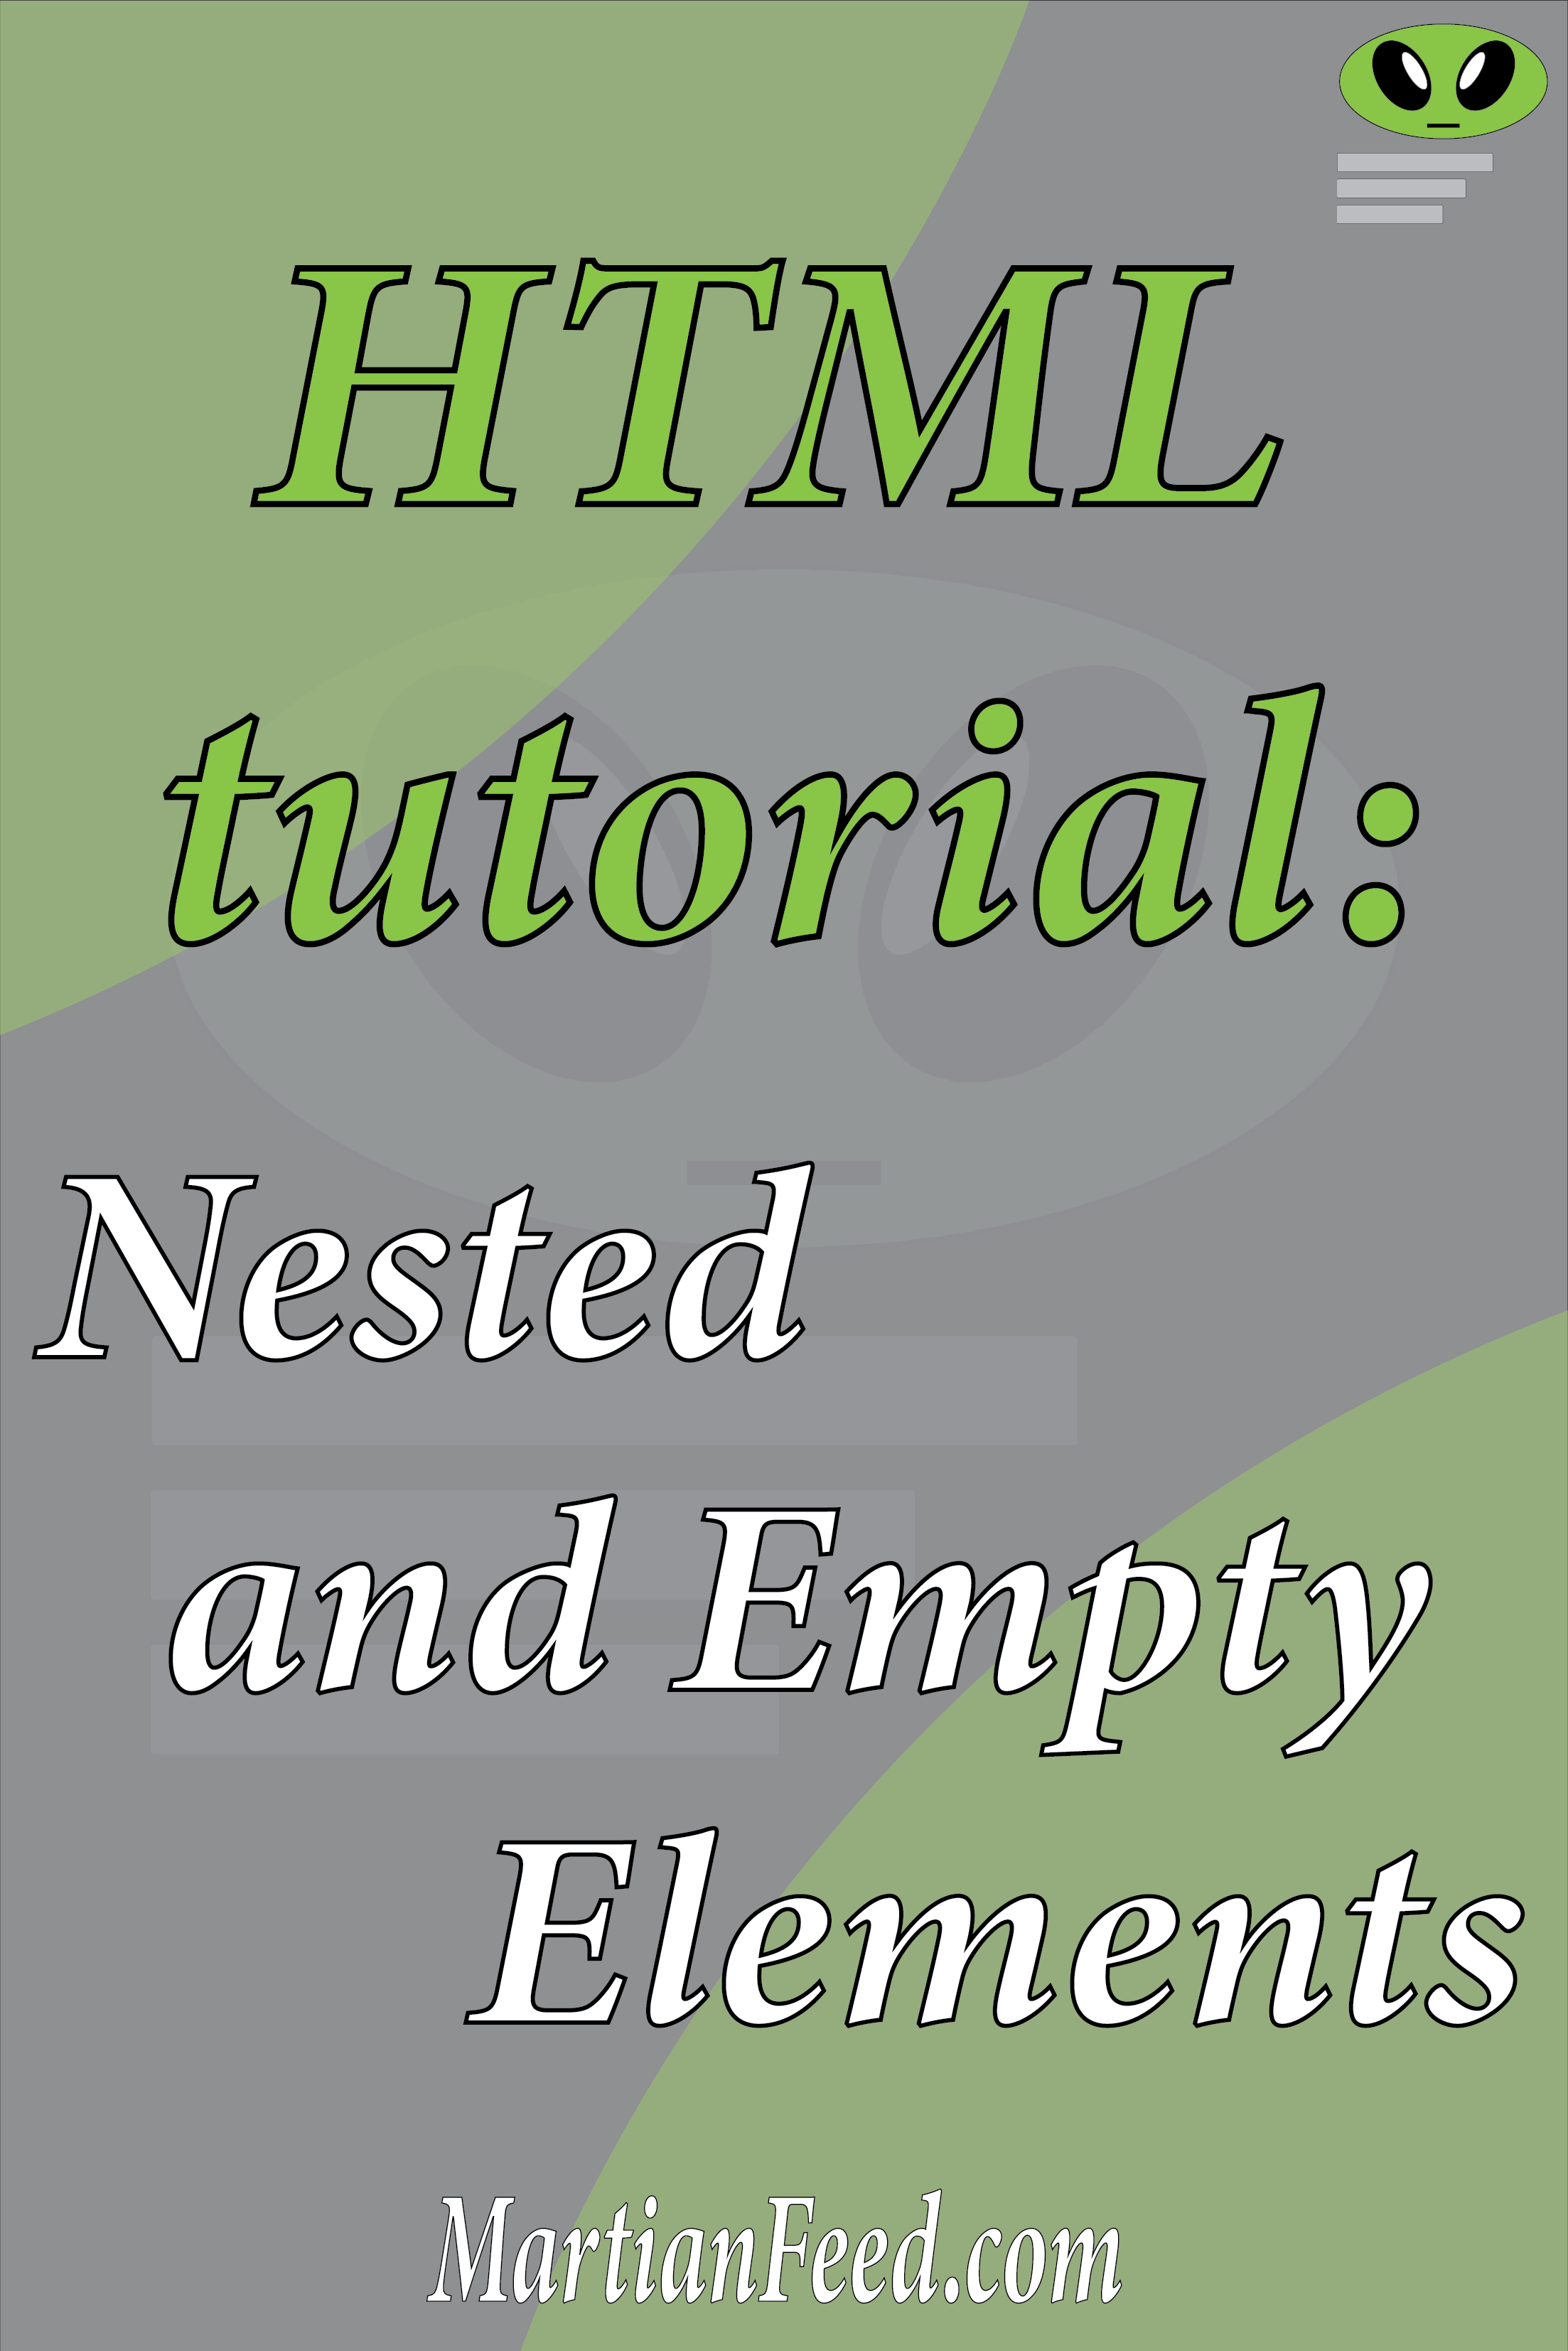 HTML: Nested and Empty Elements | Html tutorial, Html for ...